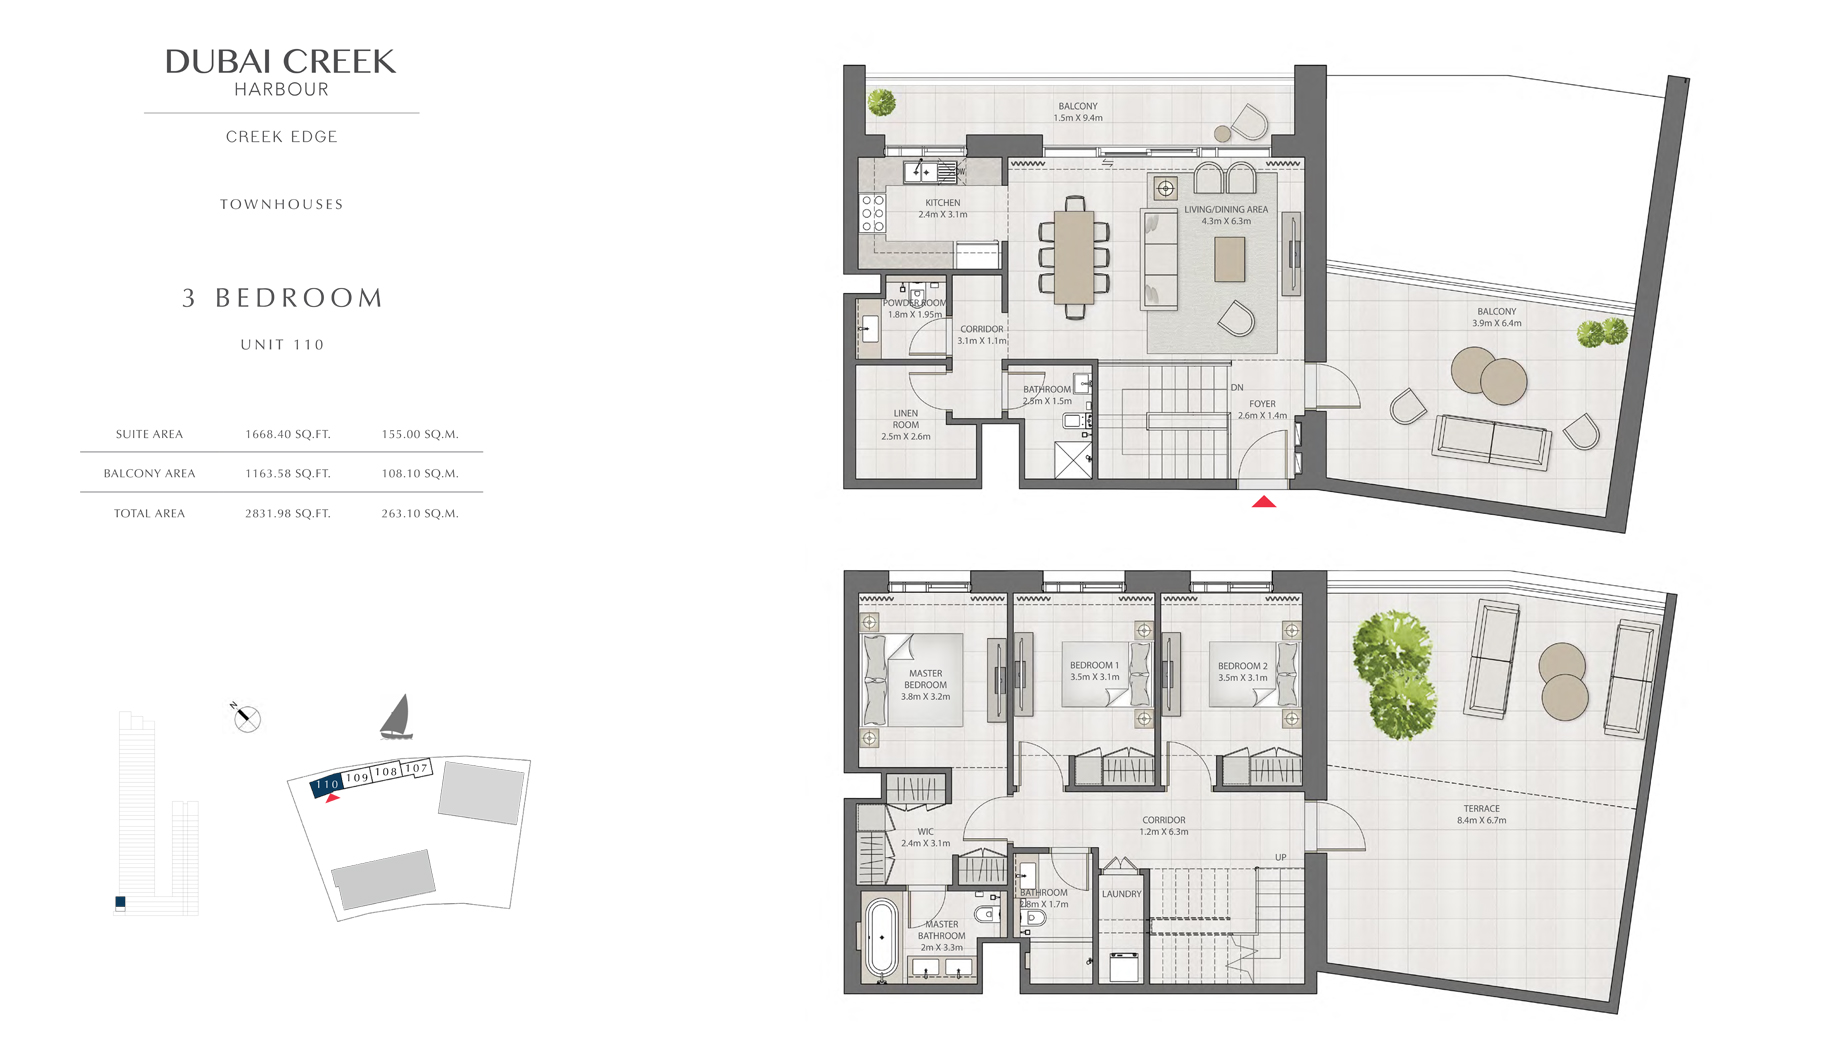 3 Bedroom Townhouses Unit 110 Size 2831 sq.ft